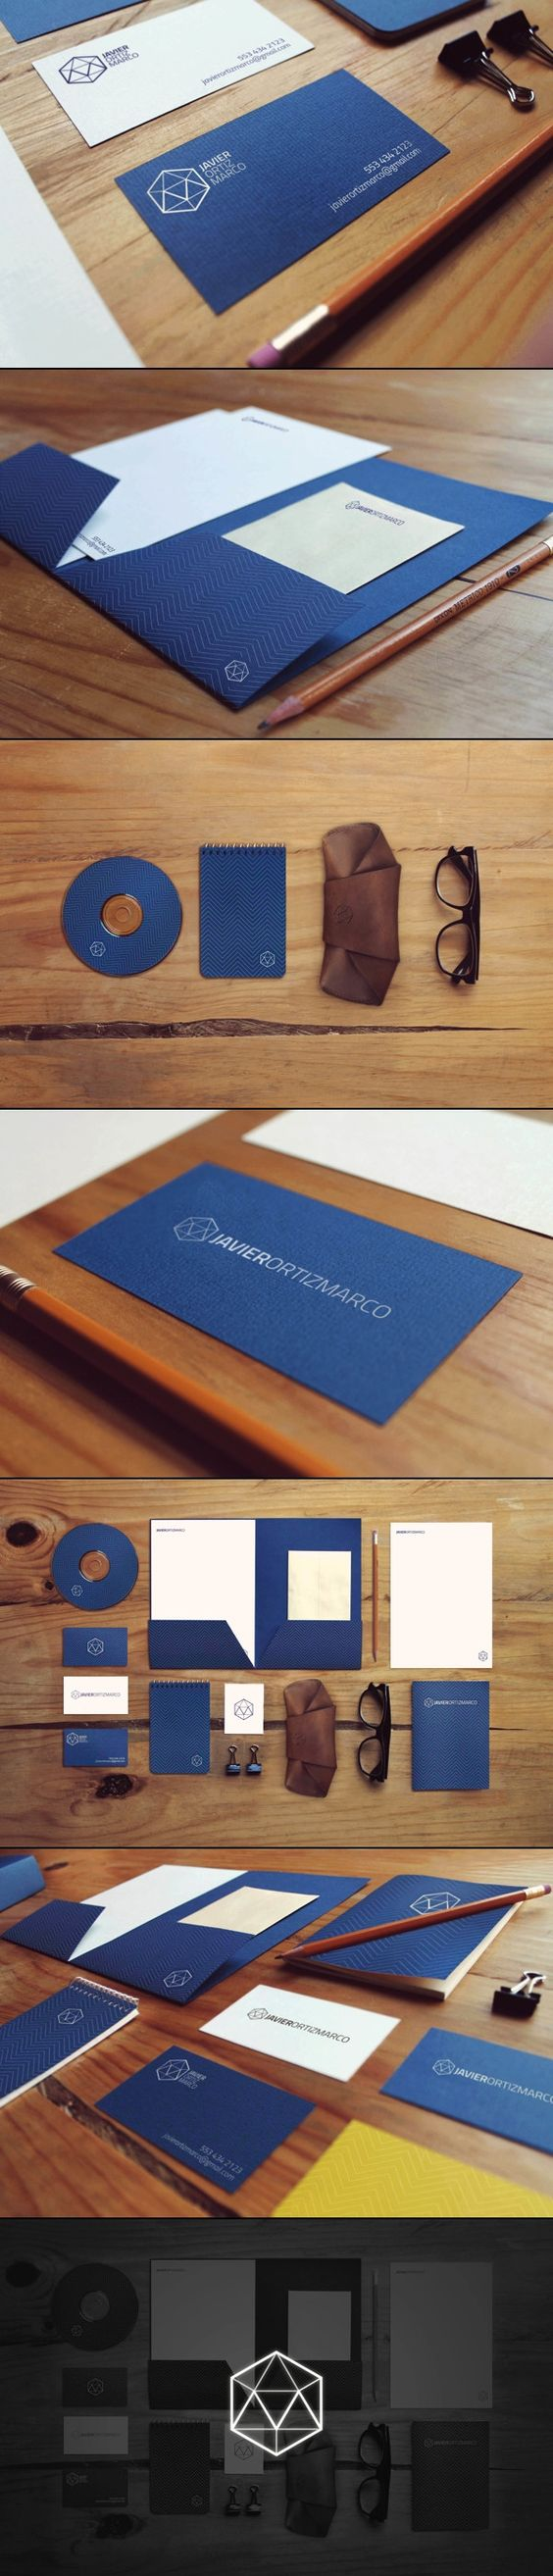 Graphic corporate design stationary business card